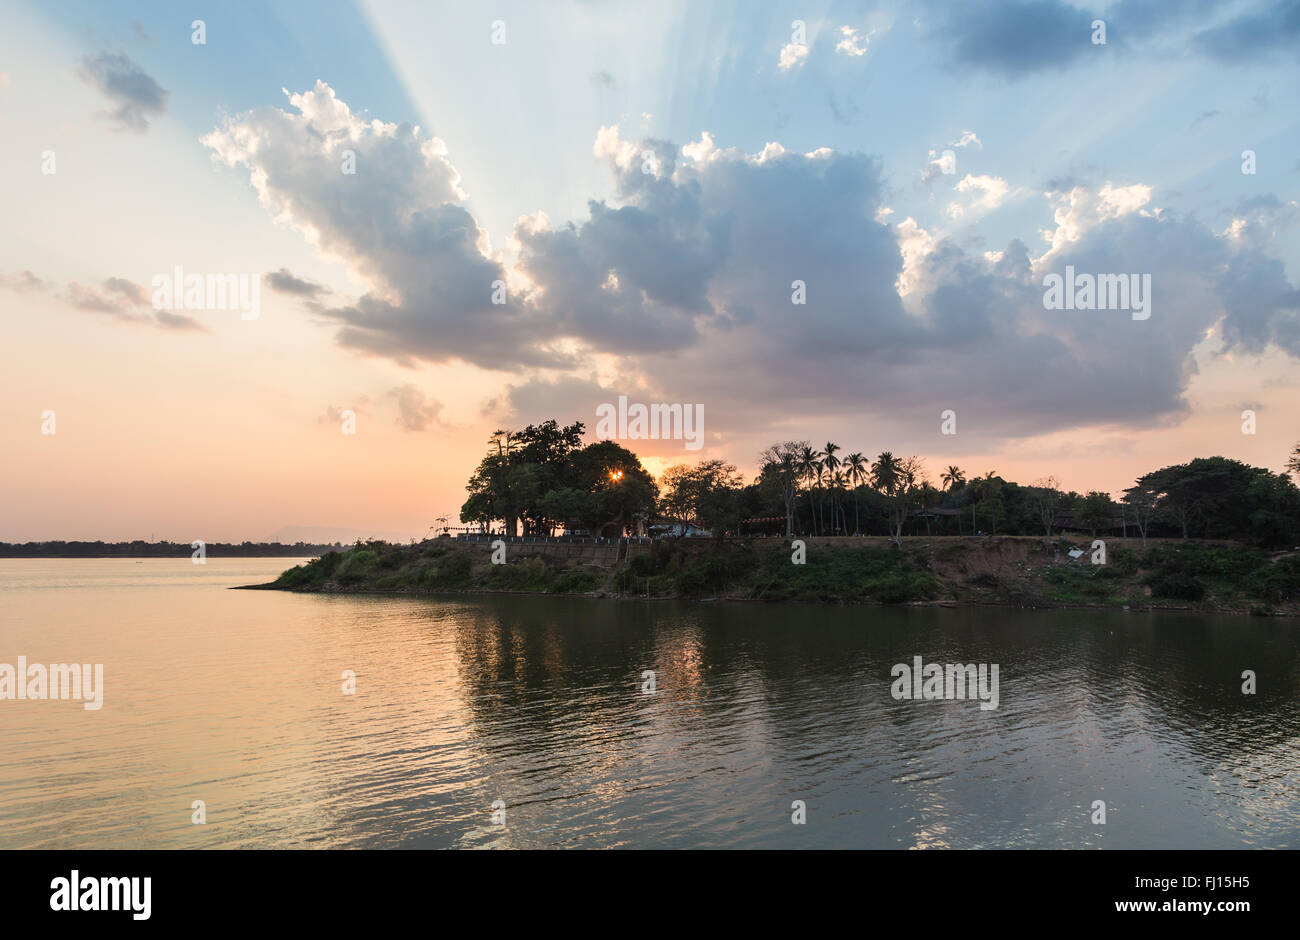 Stunning sunset over the Mekong river in Pakse in Champasak province in south Laos. - Stock Image